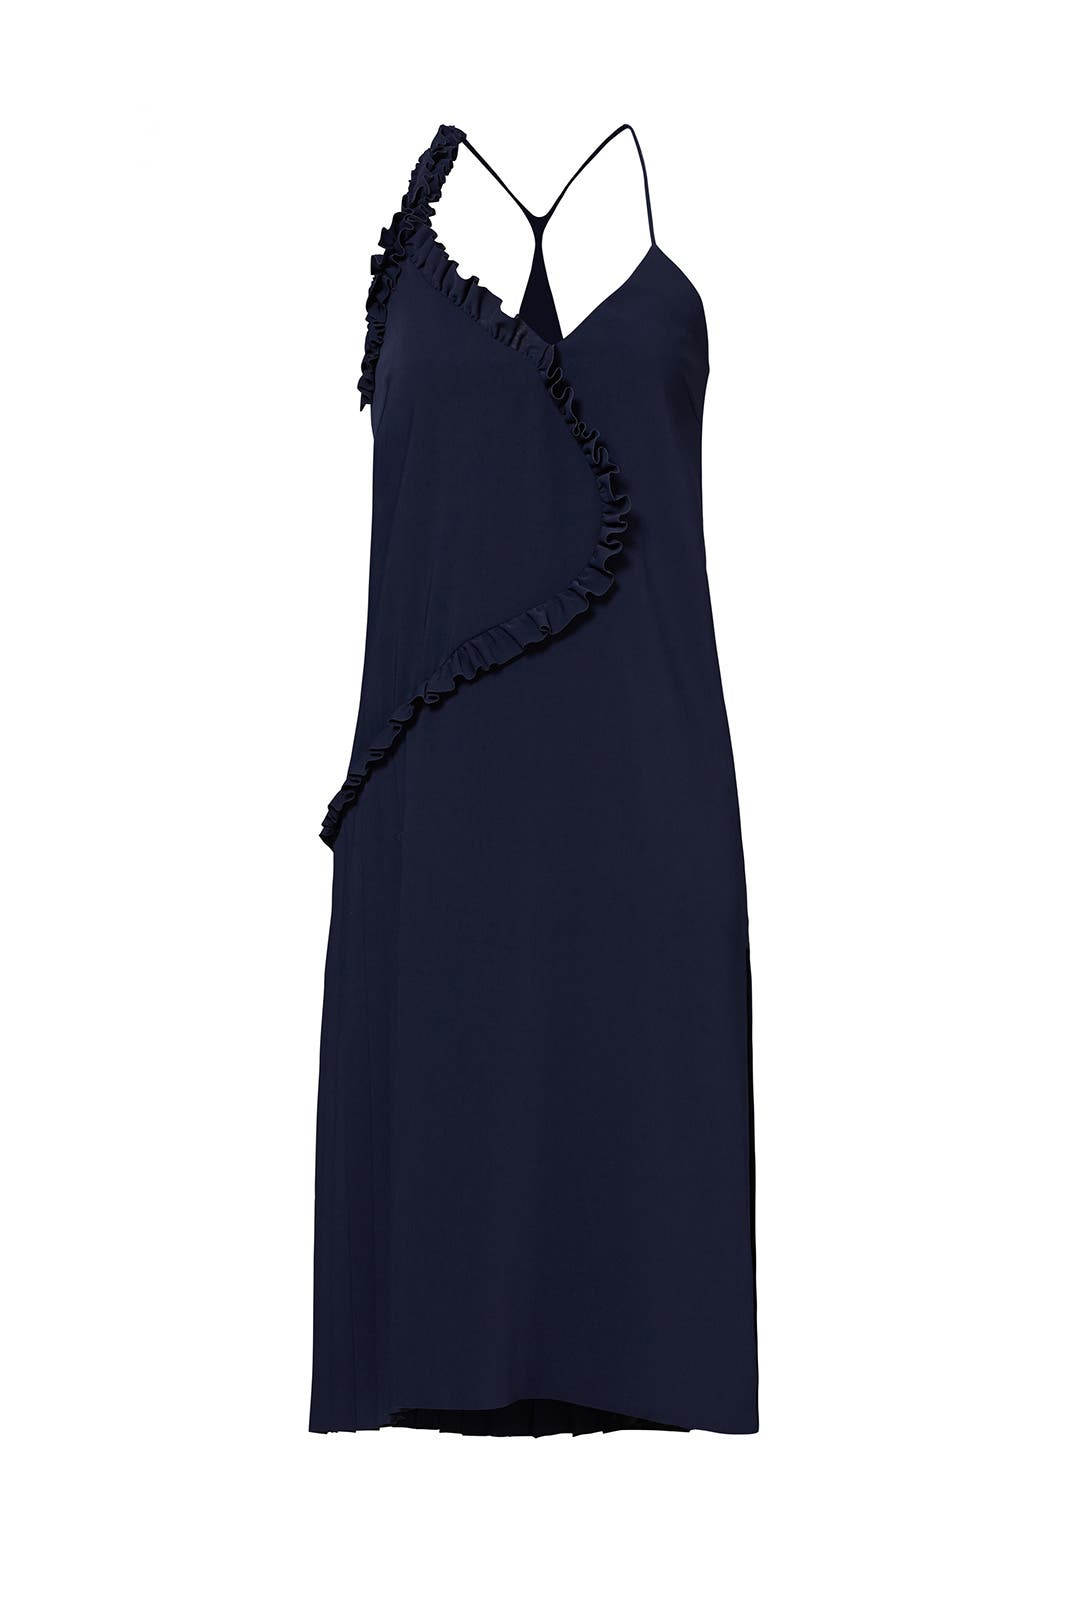 Navy Ruffle Slip Dress by Cedric Charlier for $209 | Rent the Runway